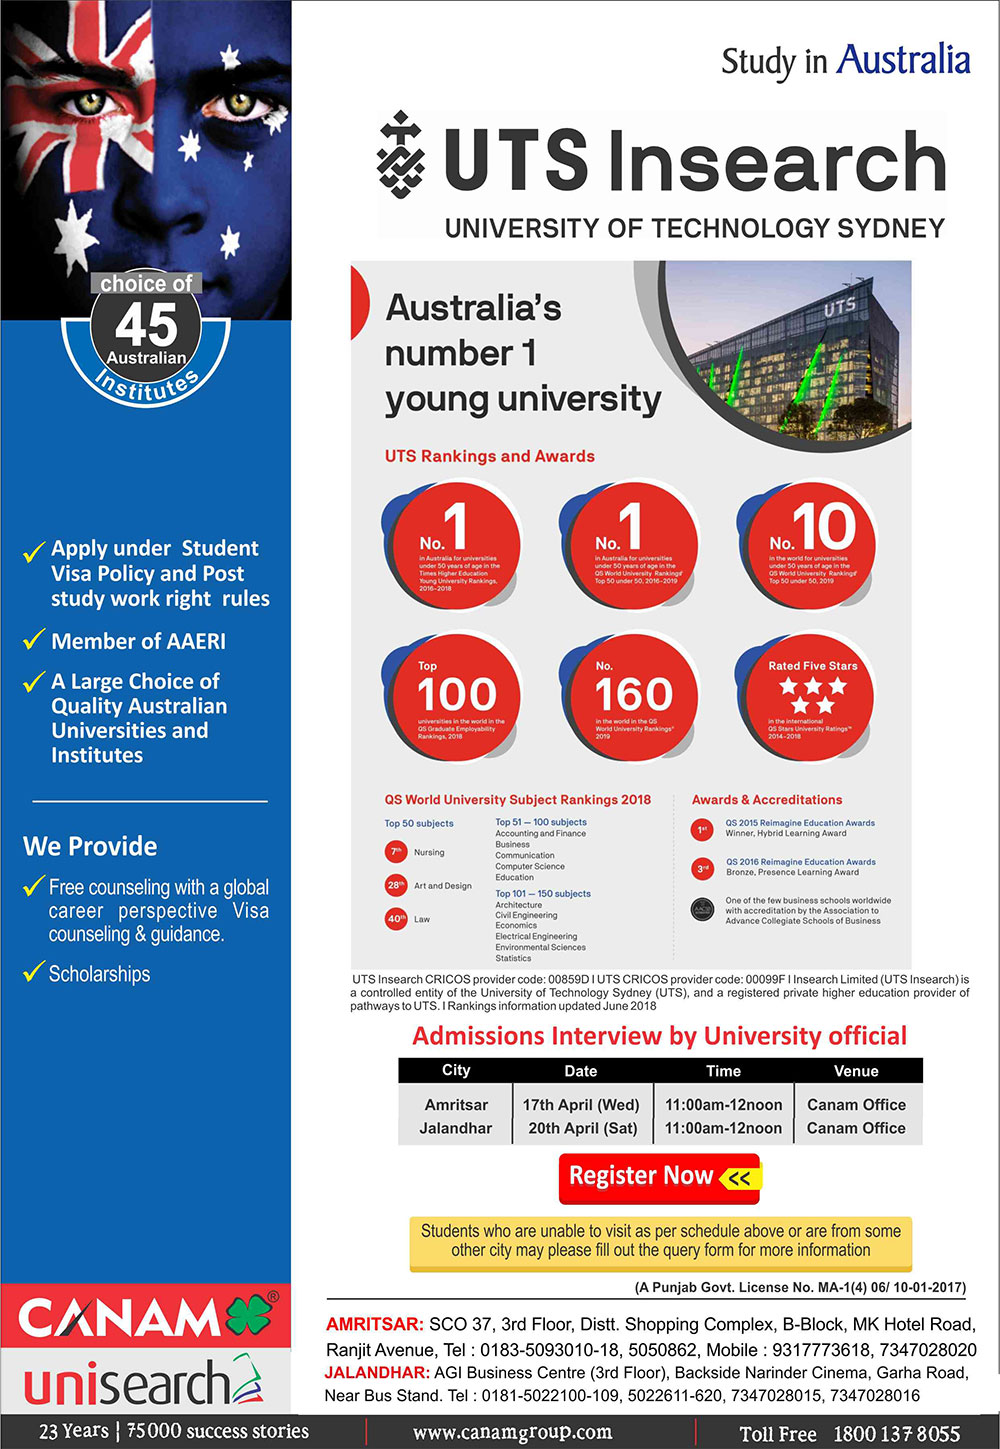 uts-insearch-limited